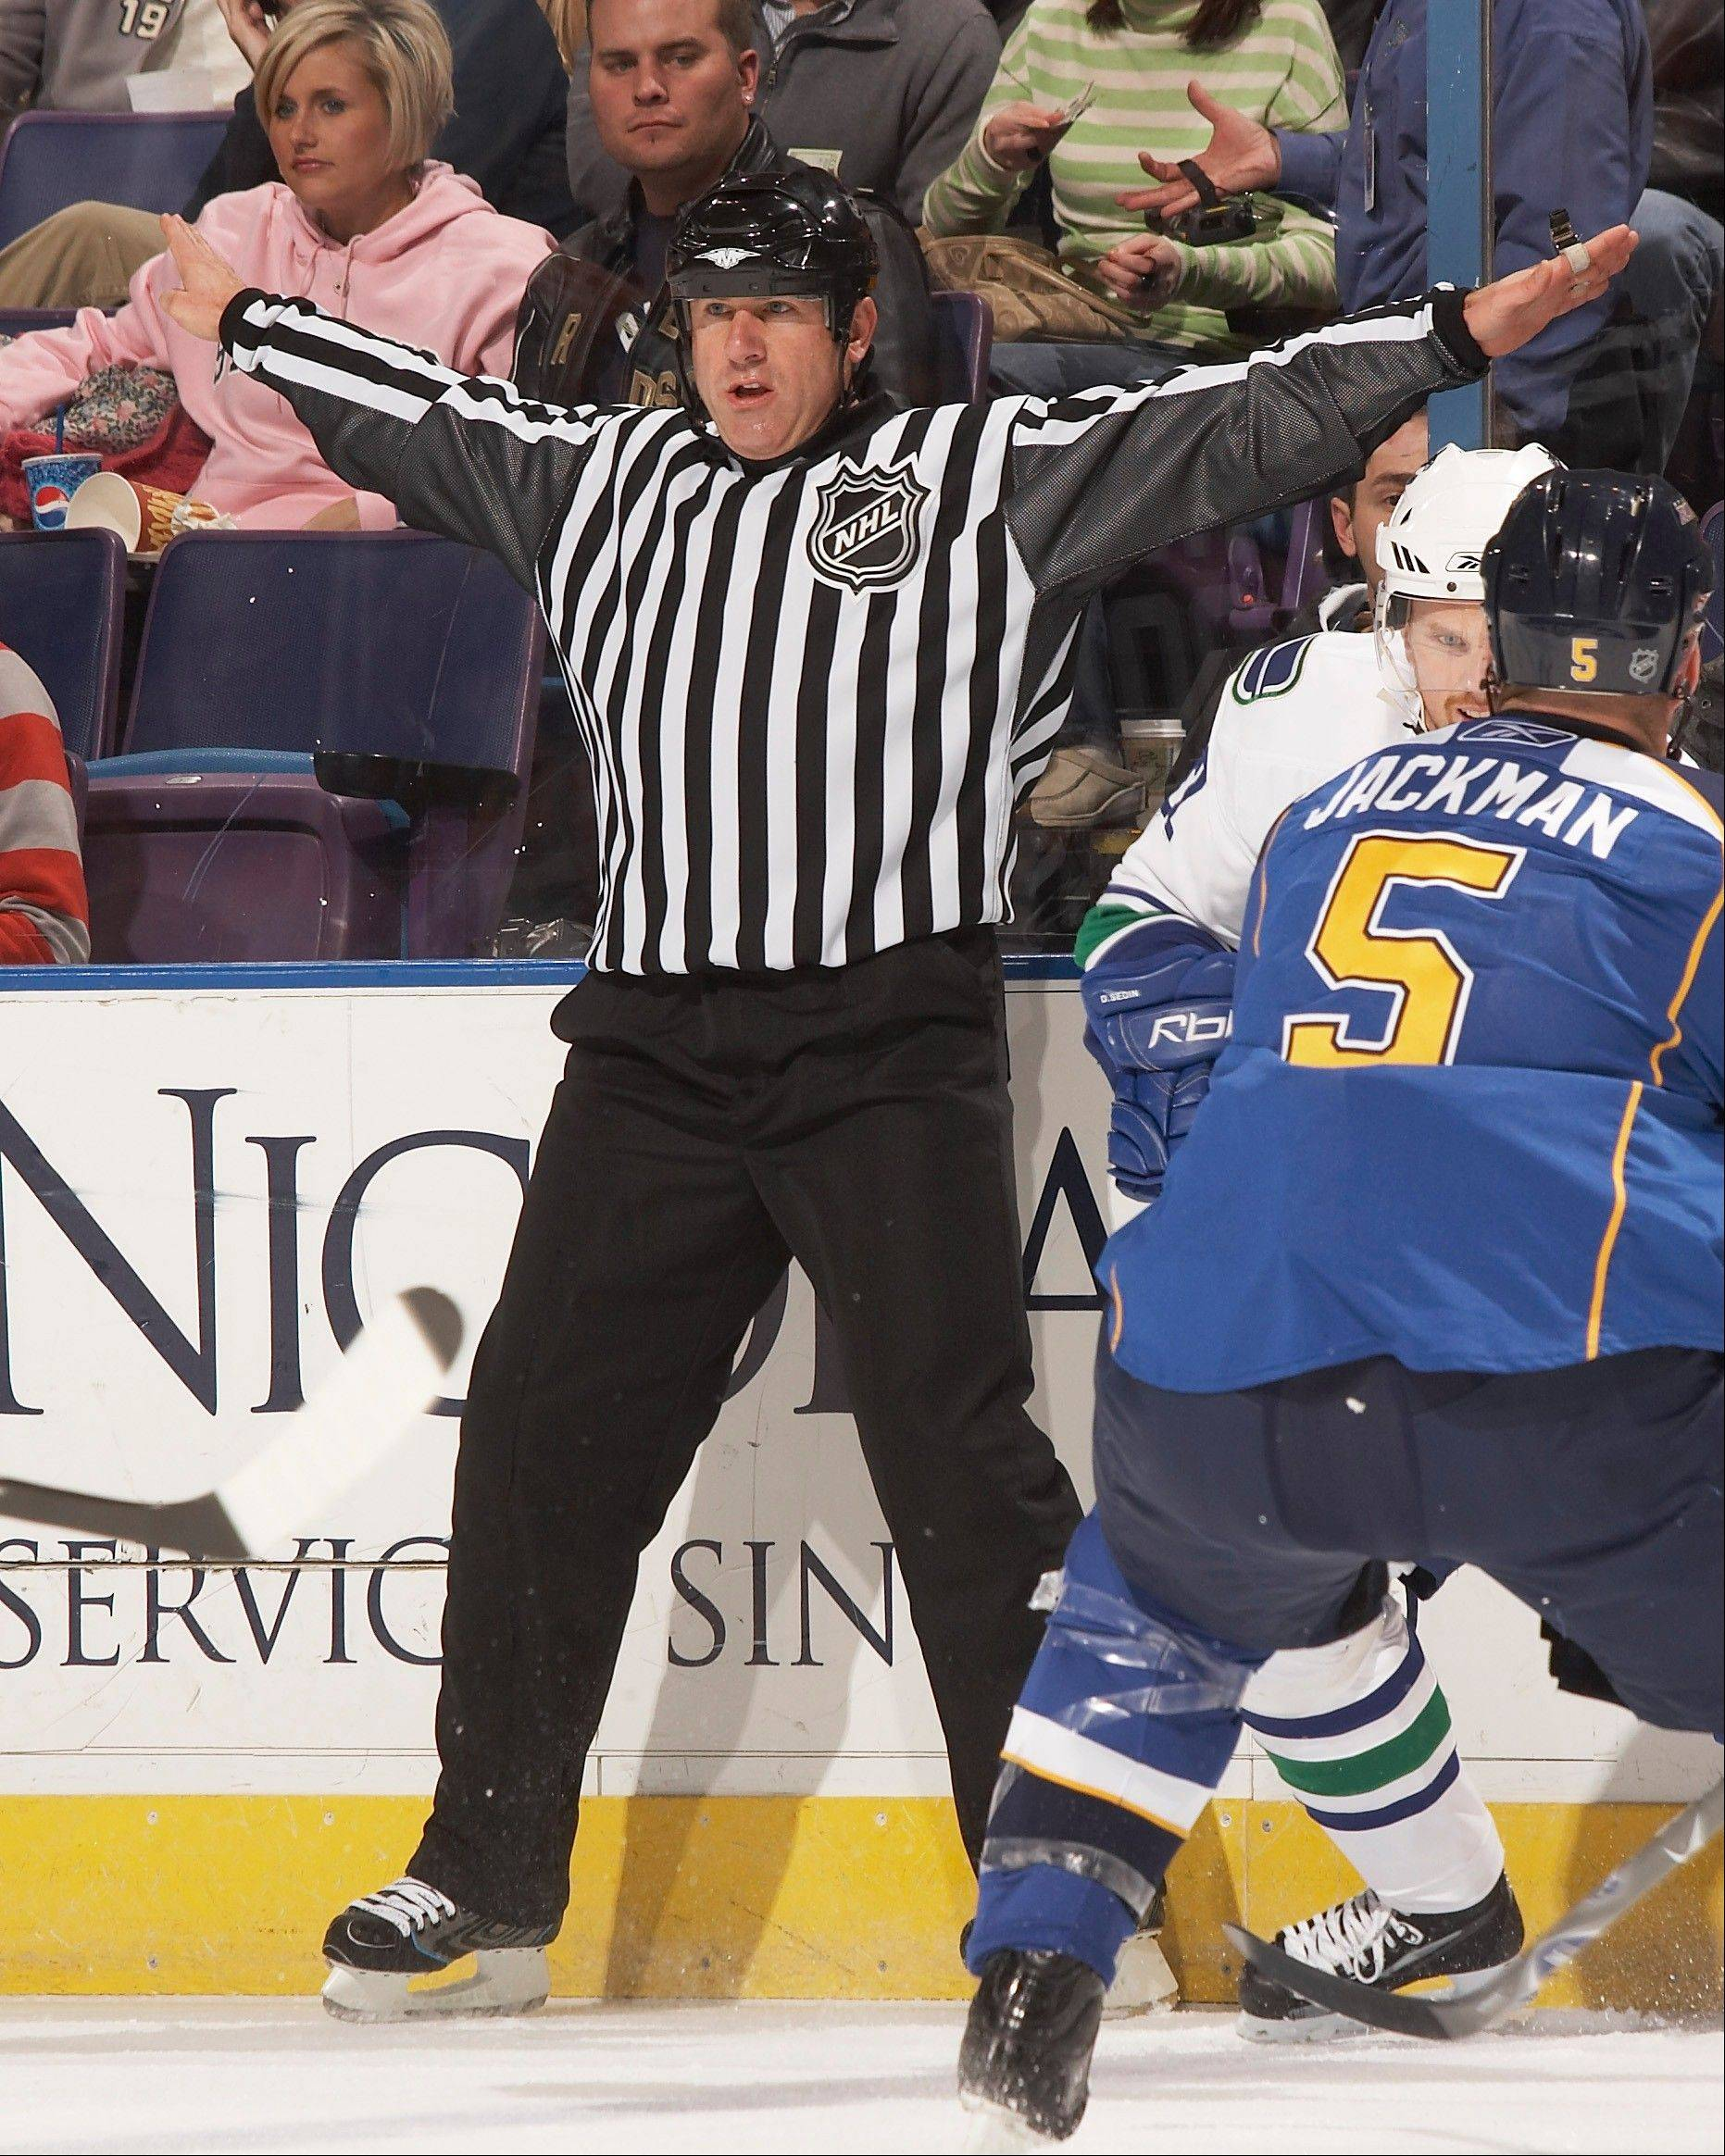 Photo courtesy of Andy McElmanAlgonquin resident and Palatine native Andy McElman is thrilled about his upcoming participation in Olympic Hockey in the Sochi Games as a linesman.